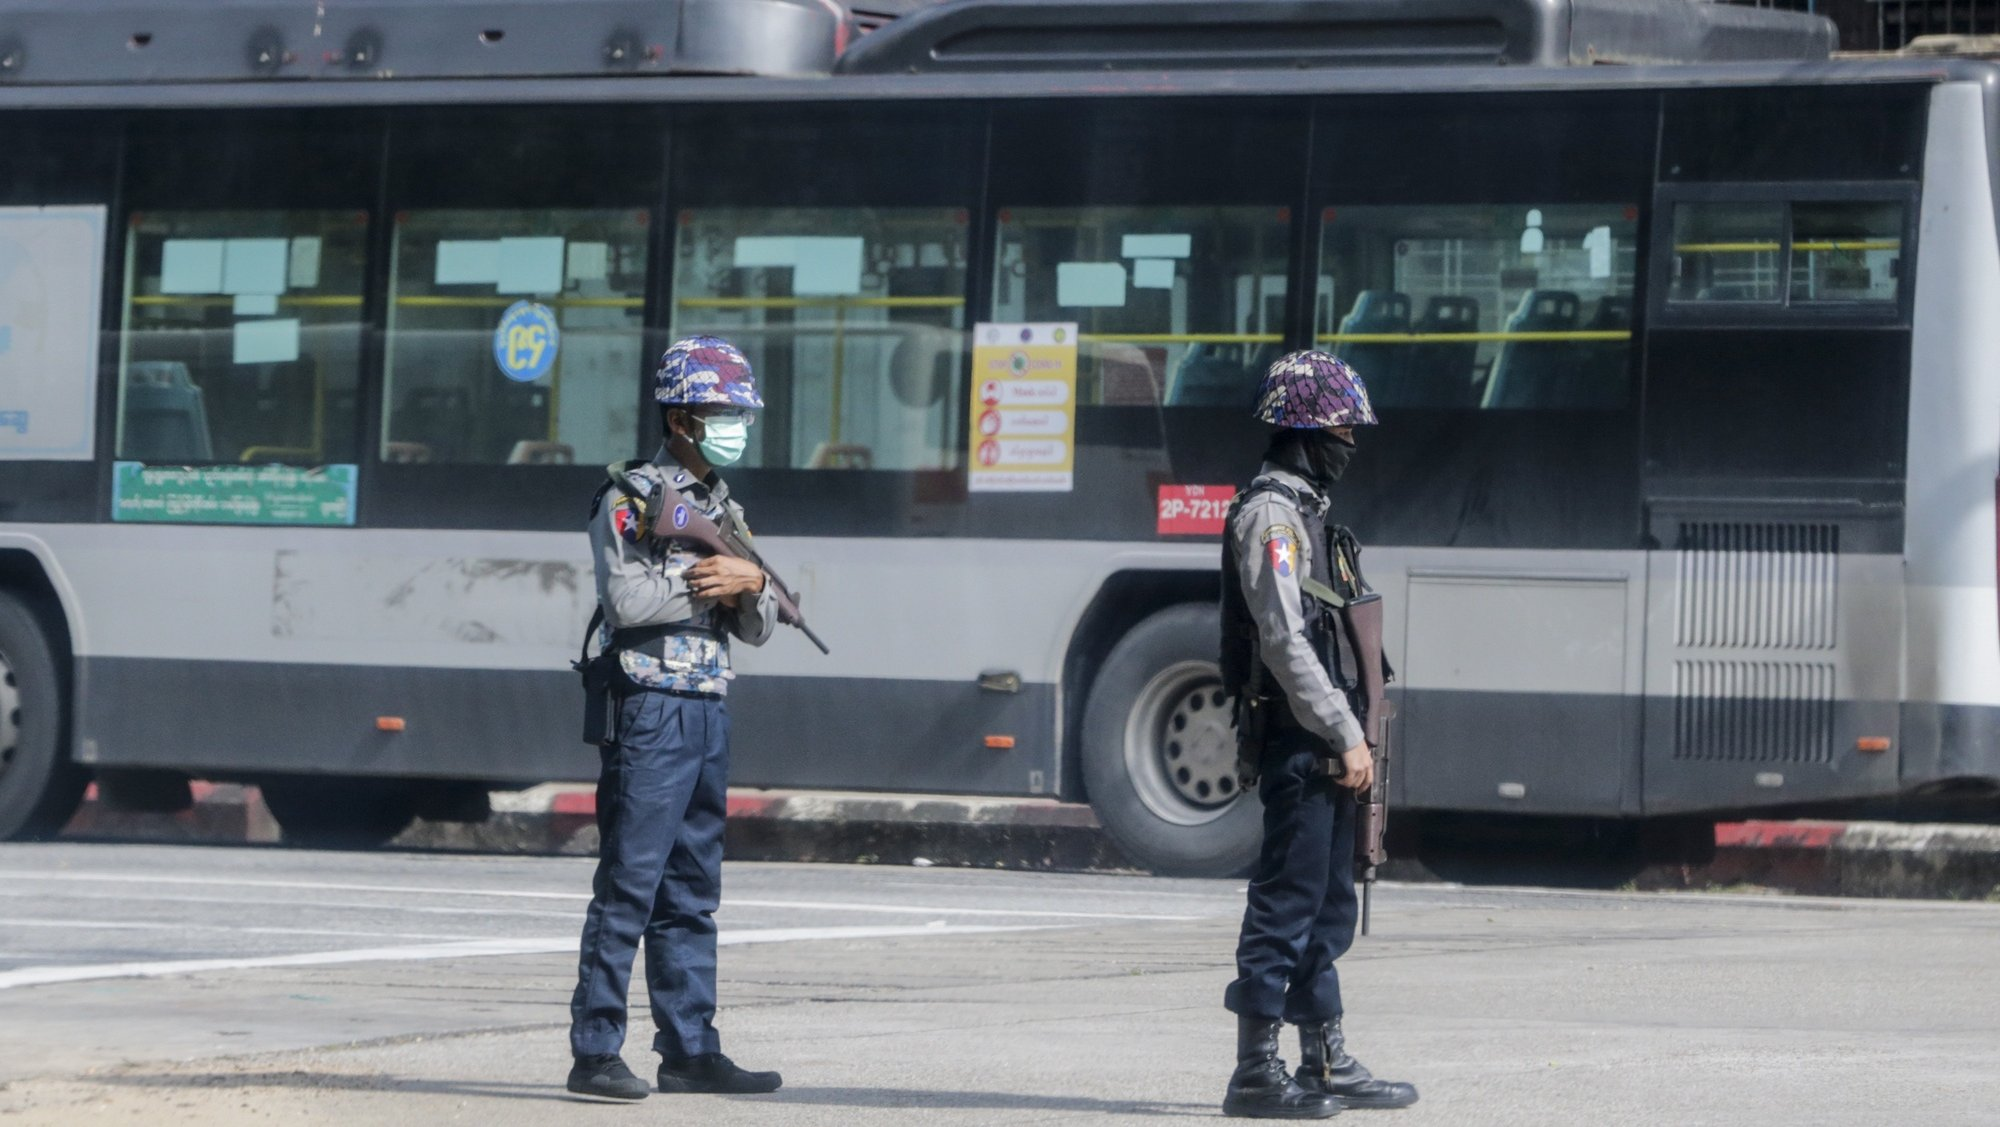 epa09408114 Armed policemen stand guard as they block a road after several explosions occurred at downtown area in Yangon, Myanmar, 10 August 2021. Reports indicate at least five explosions occurred in the afternoon of 10 August. No casualties or injuries reported by authority.  EPA/STRINGER